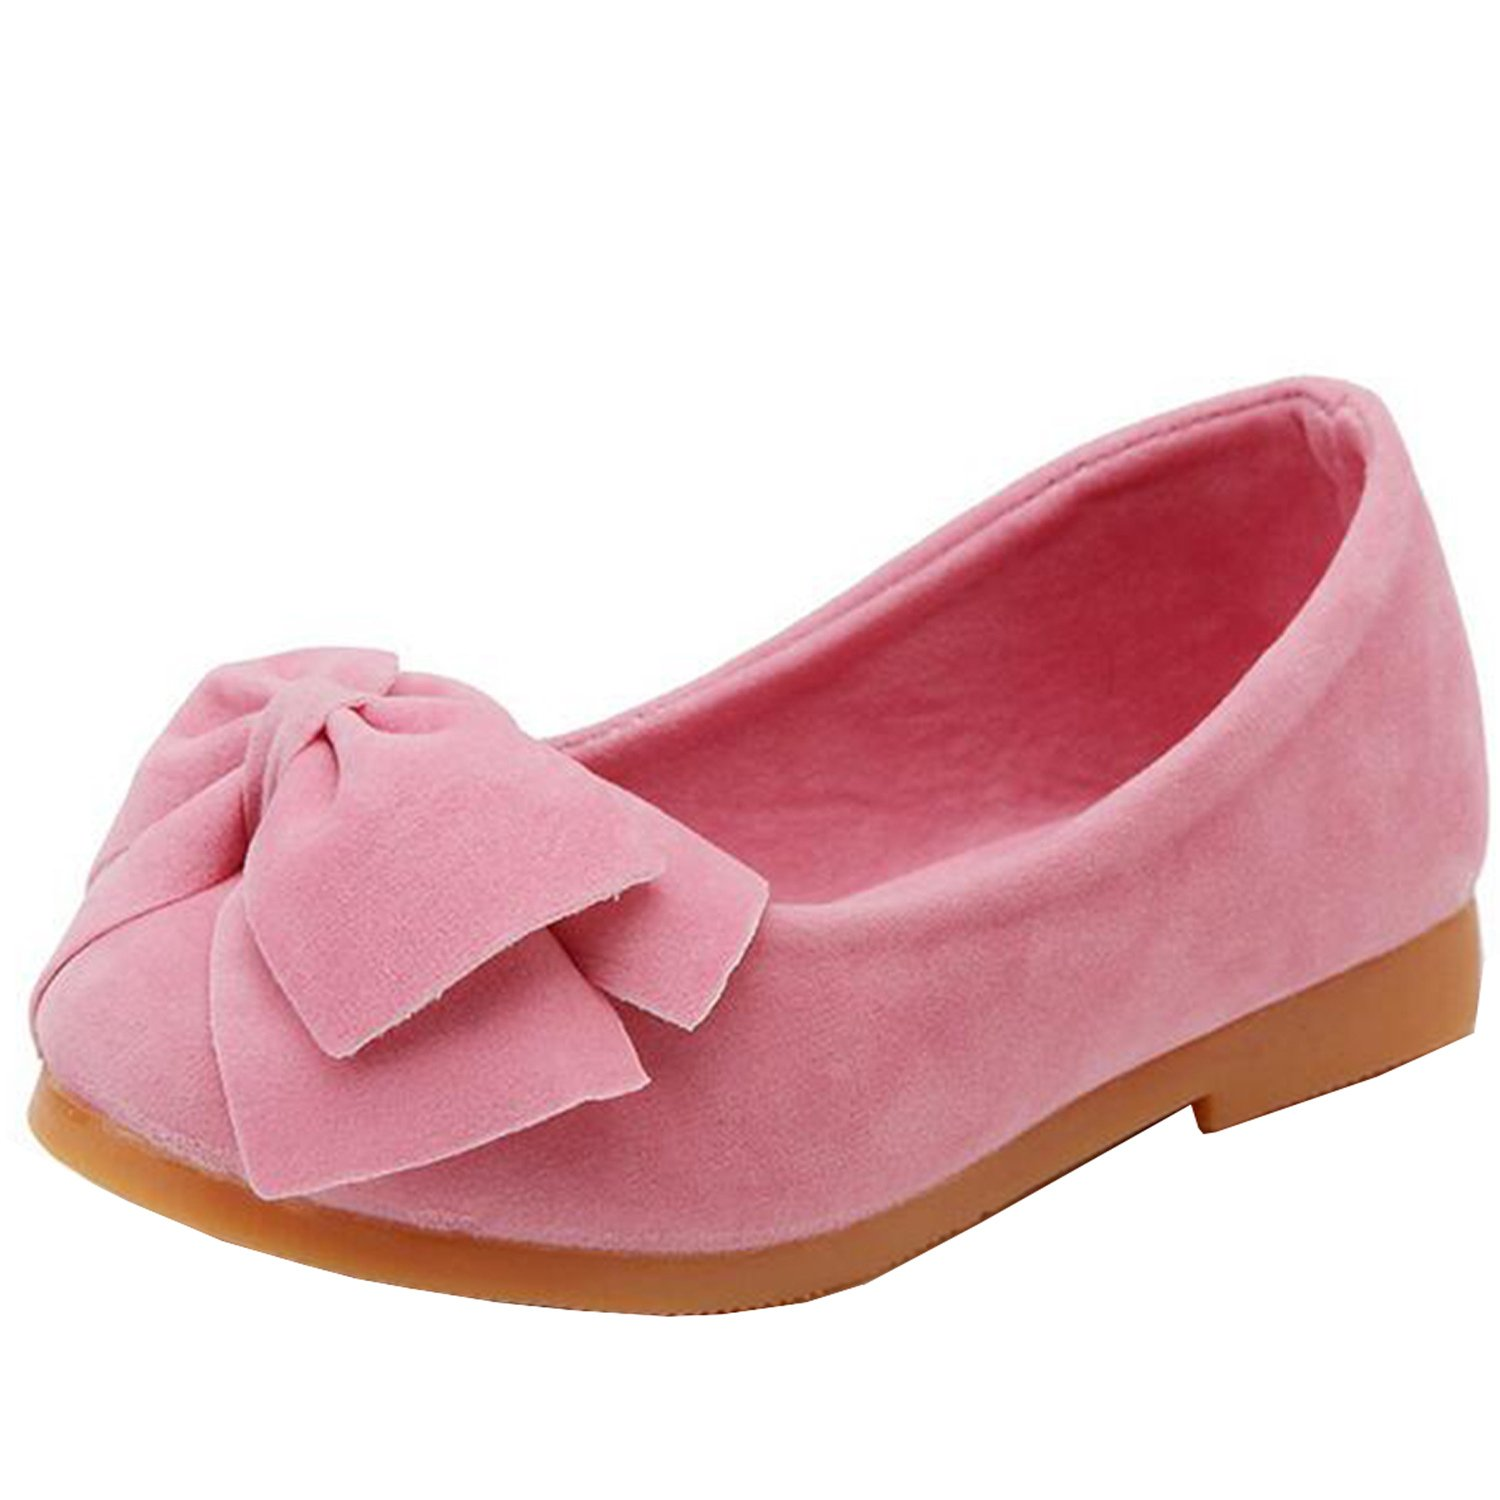 Lovirs Girls Casual Slip On Bowtie Mary Jane Flats Ballerina Flat Toddler Shoes Todd-01A